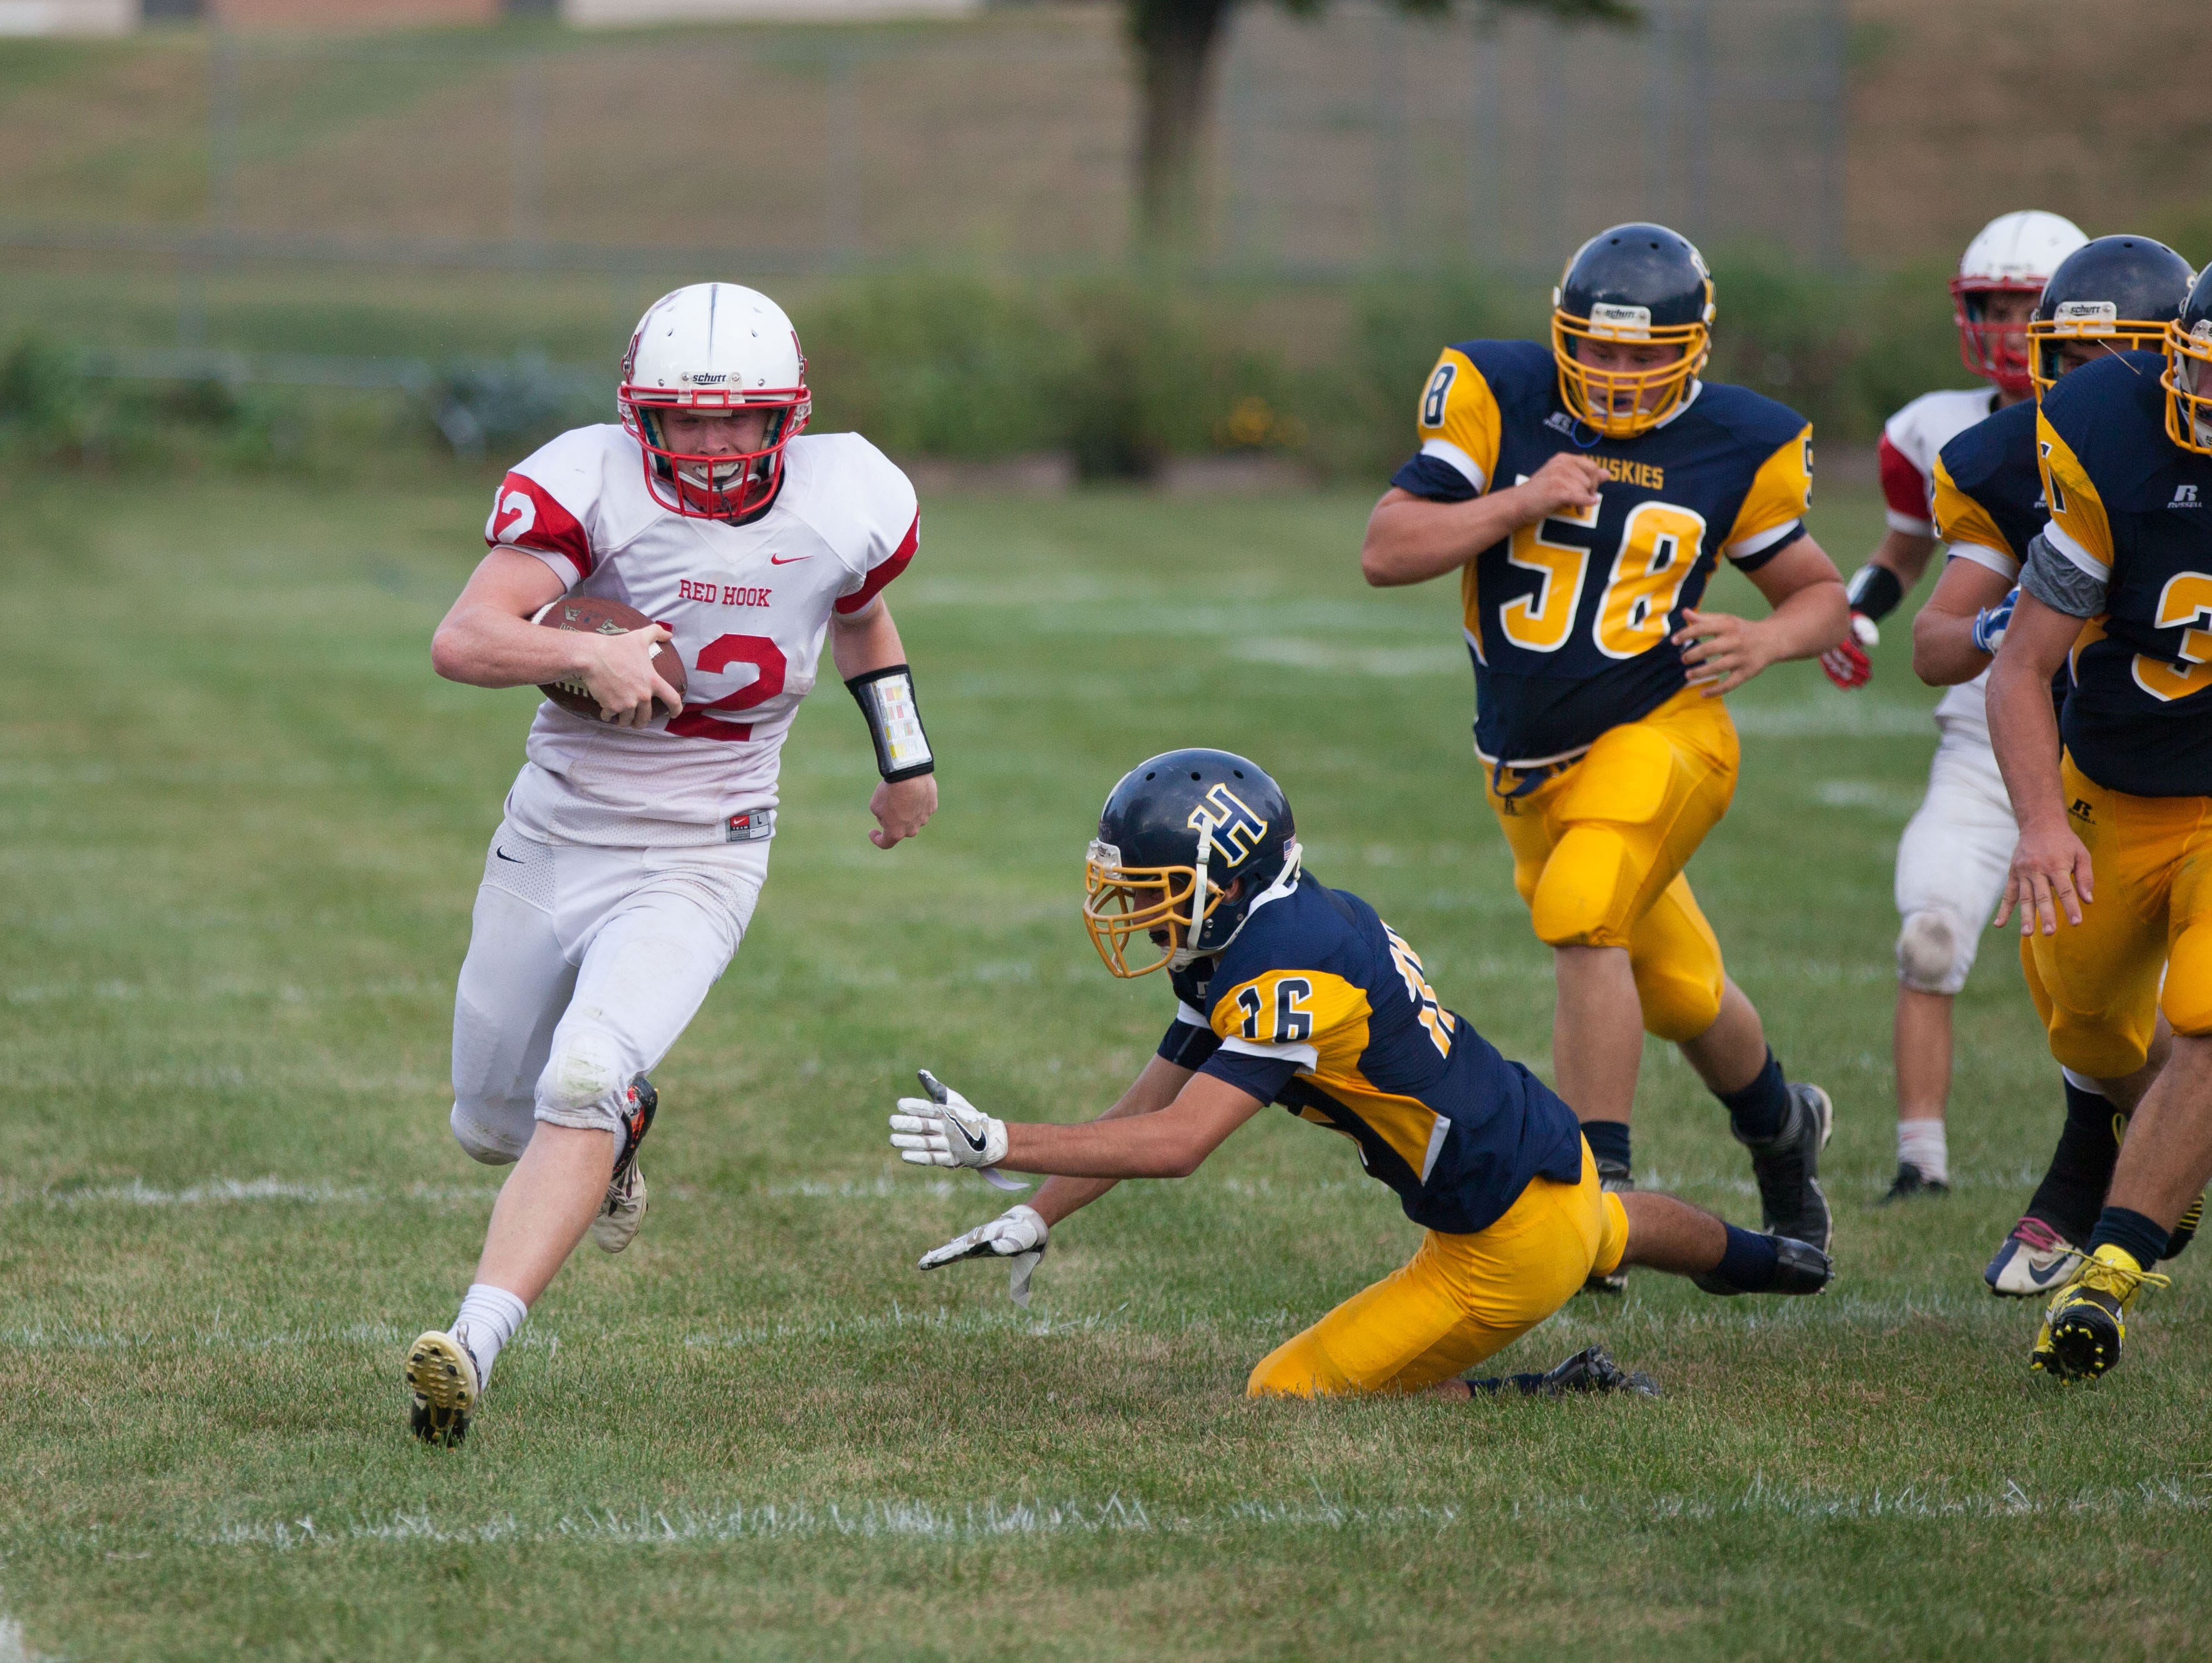 Red Hook's Nick Morrissey eludes the Highland defense to convert his run into a touchdown on Saturday at Highland Middle School.